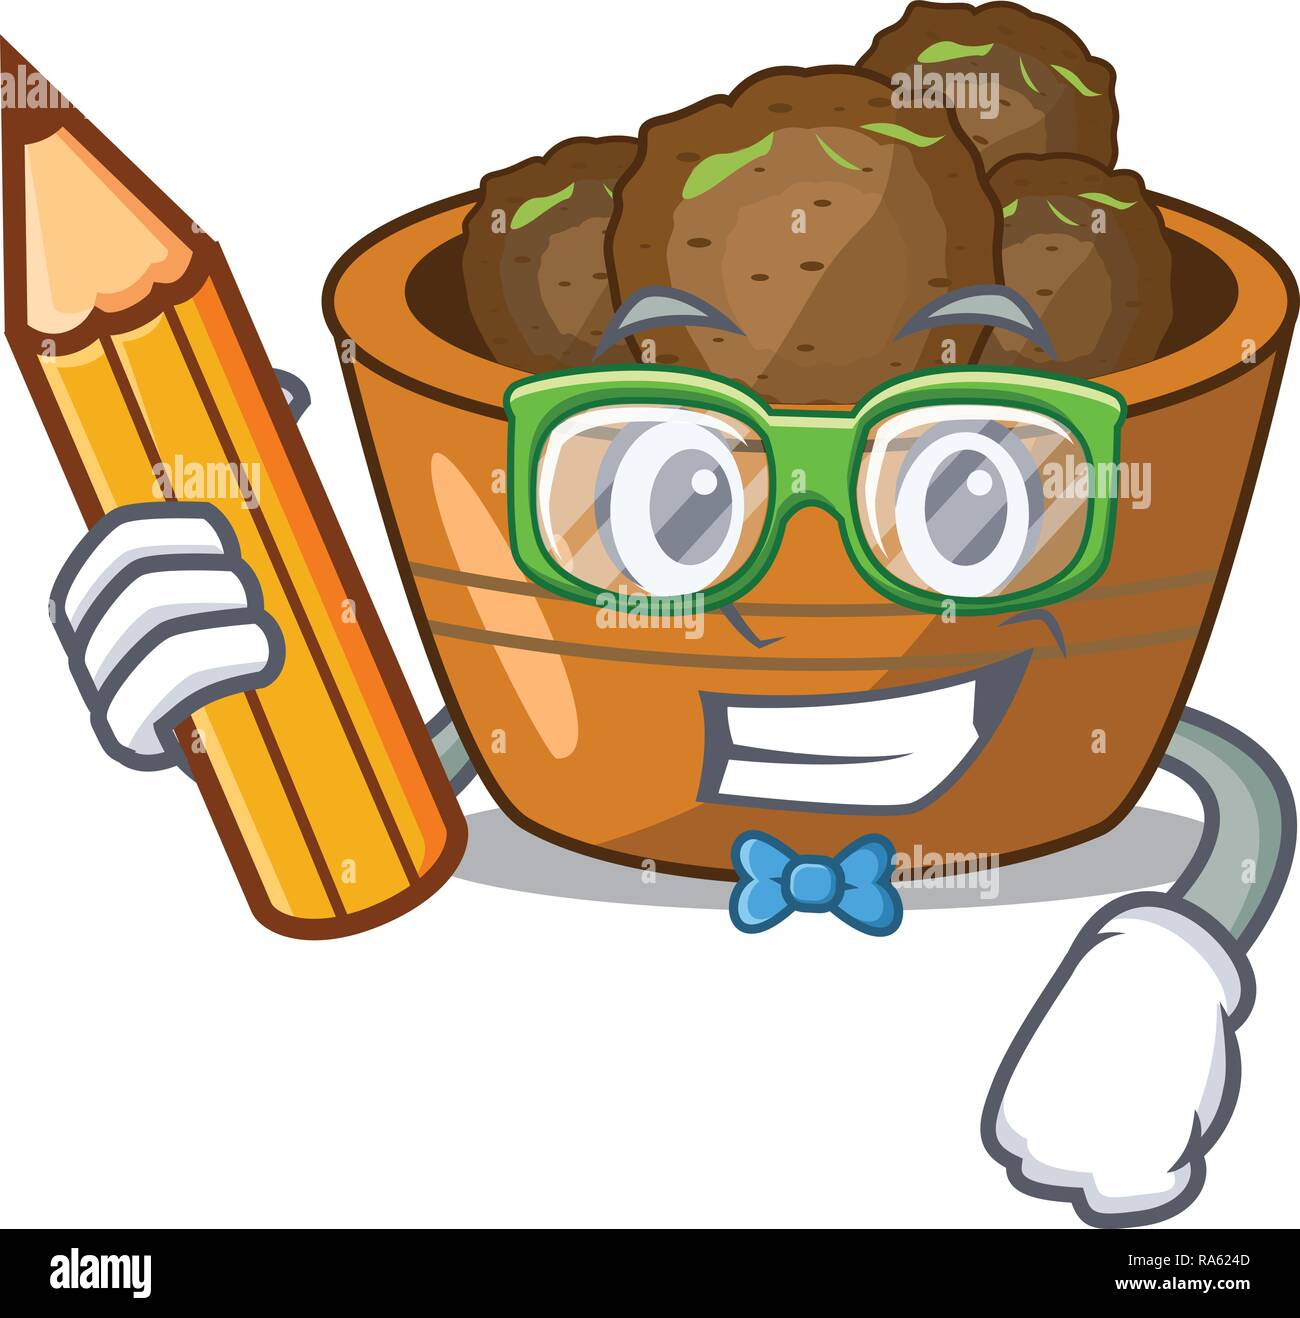 Student gulab jamun on the character table - Stock Vector